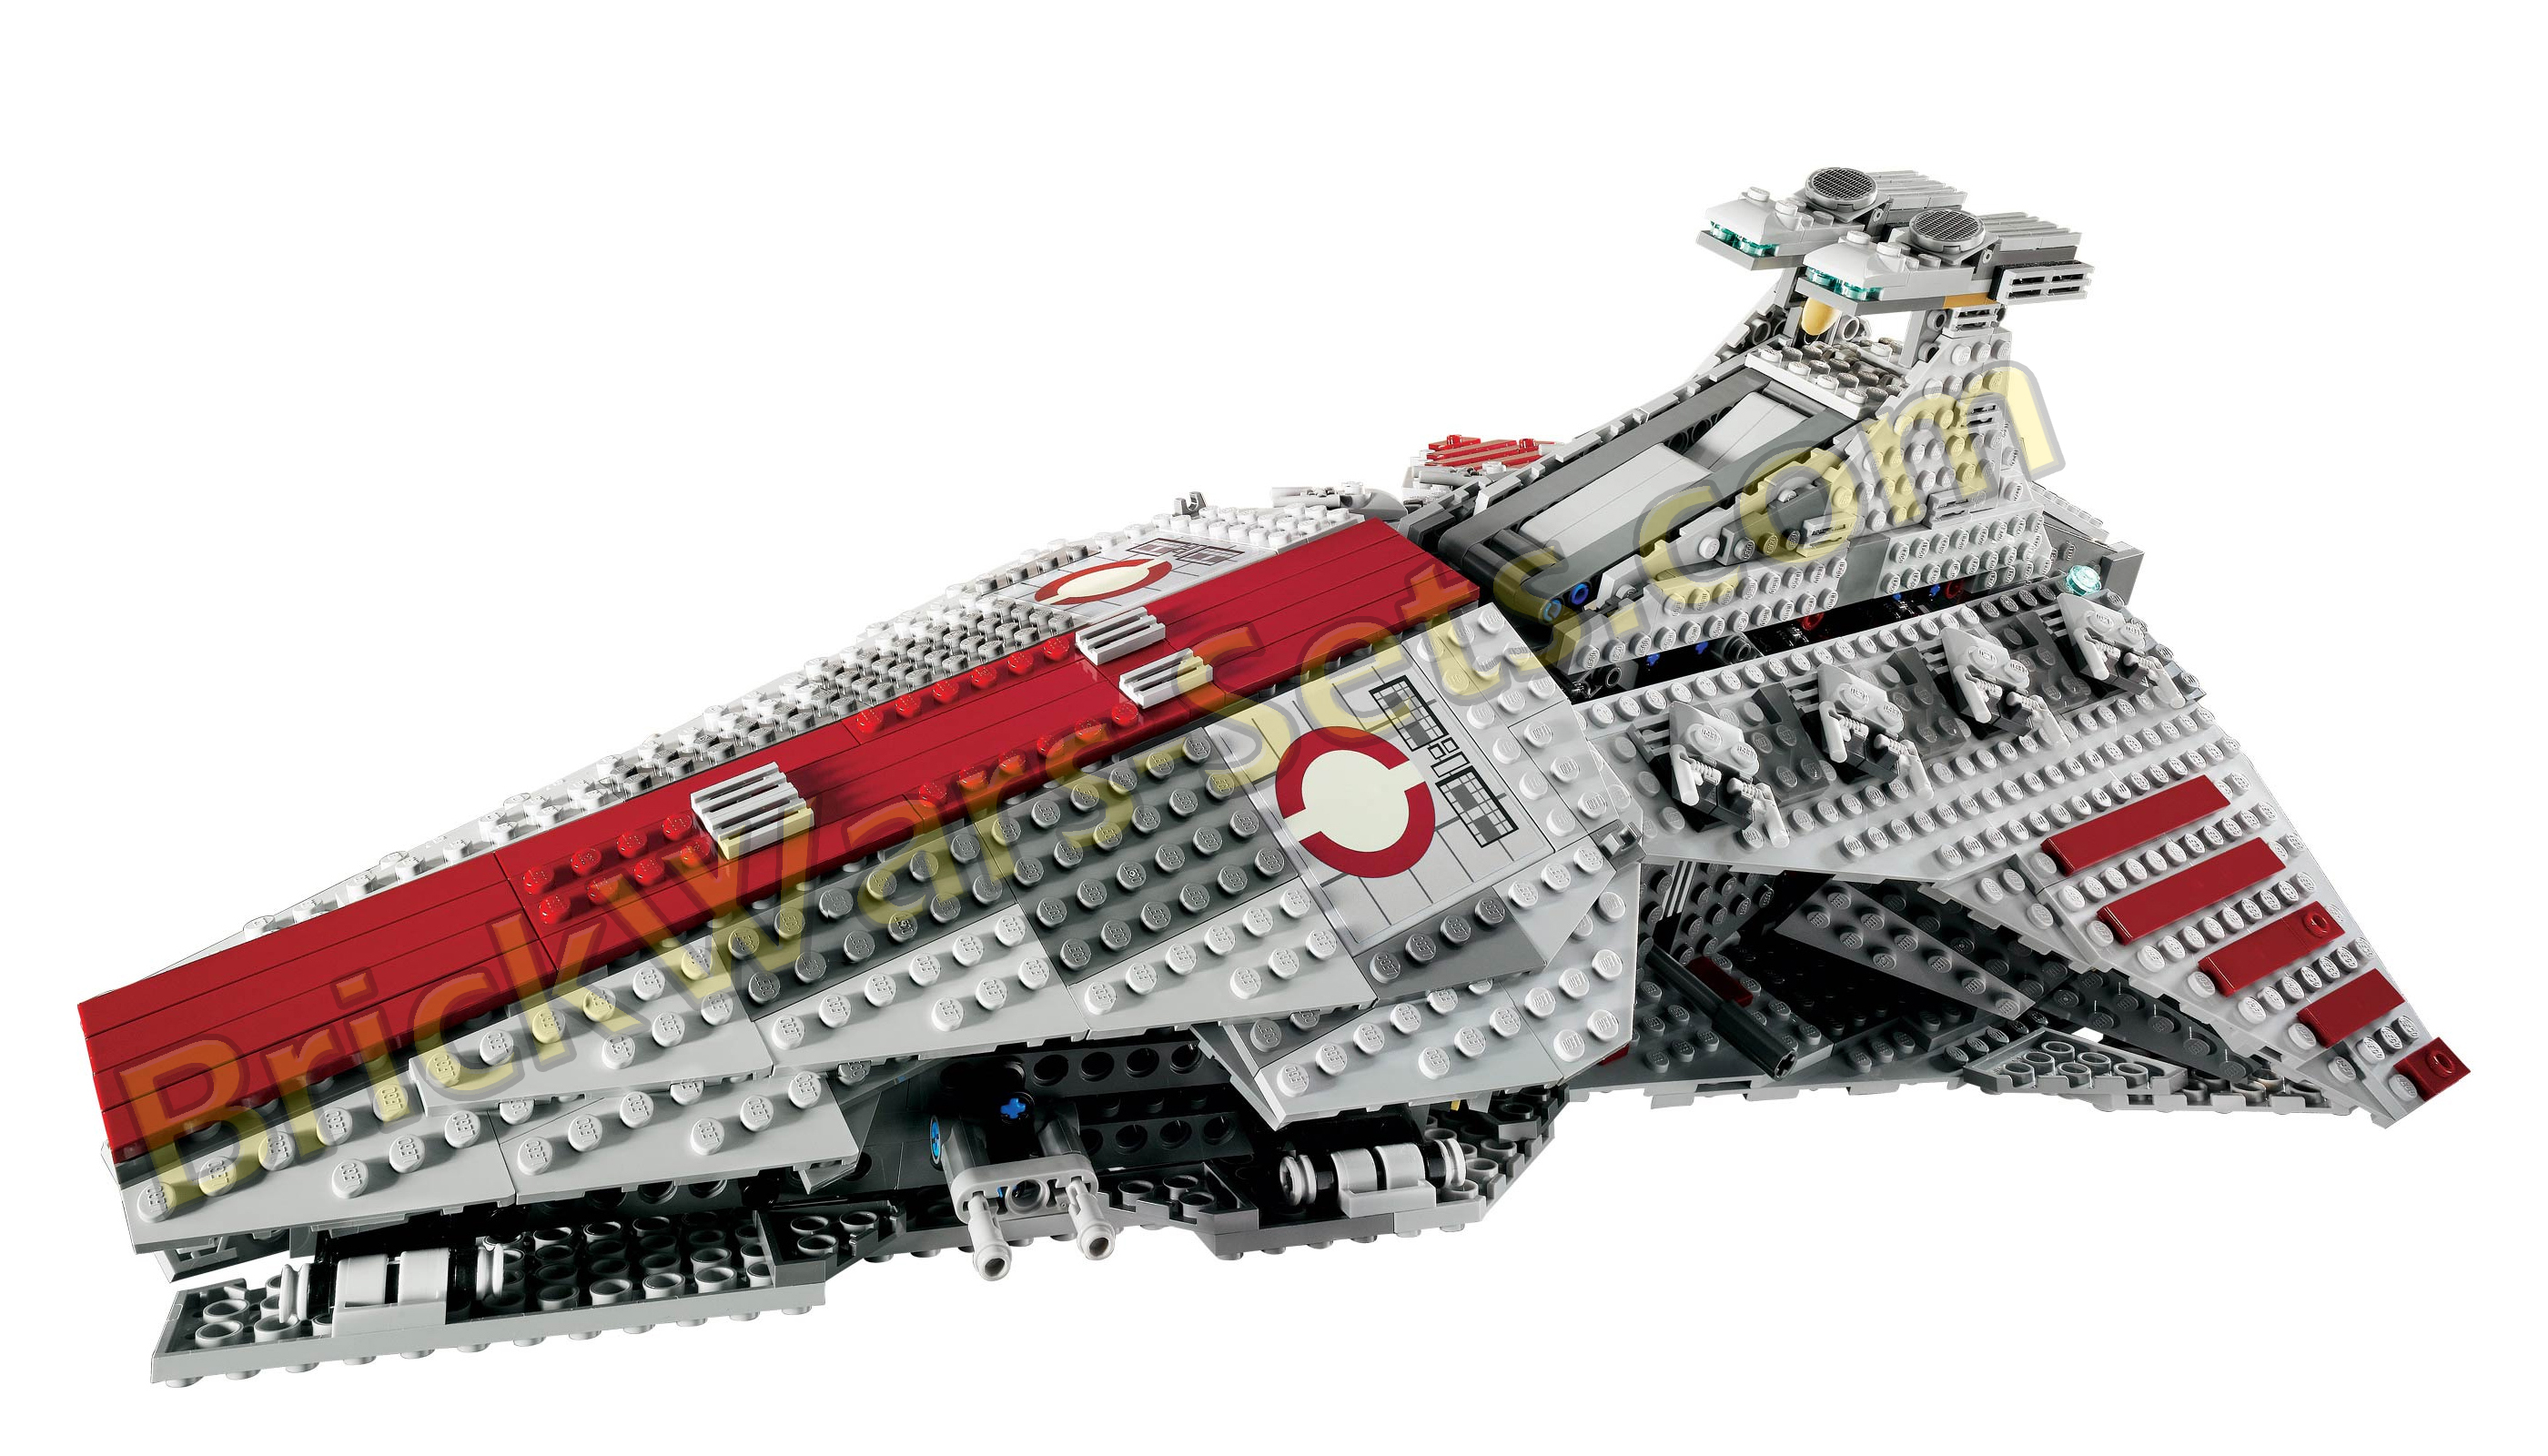 lego republic star destroyer - photo #30